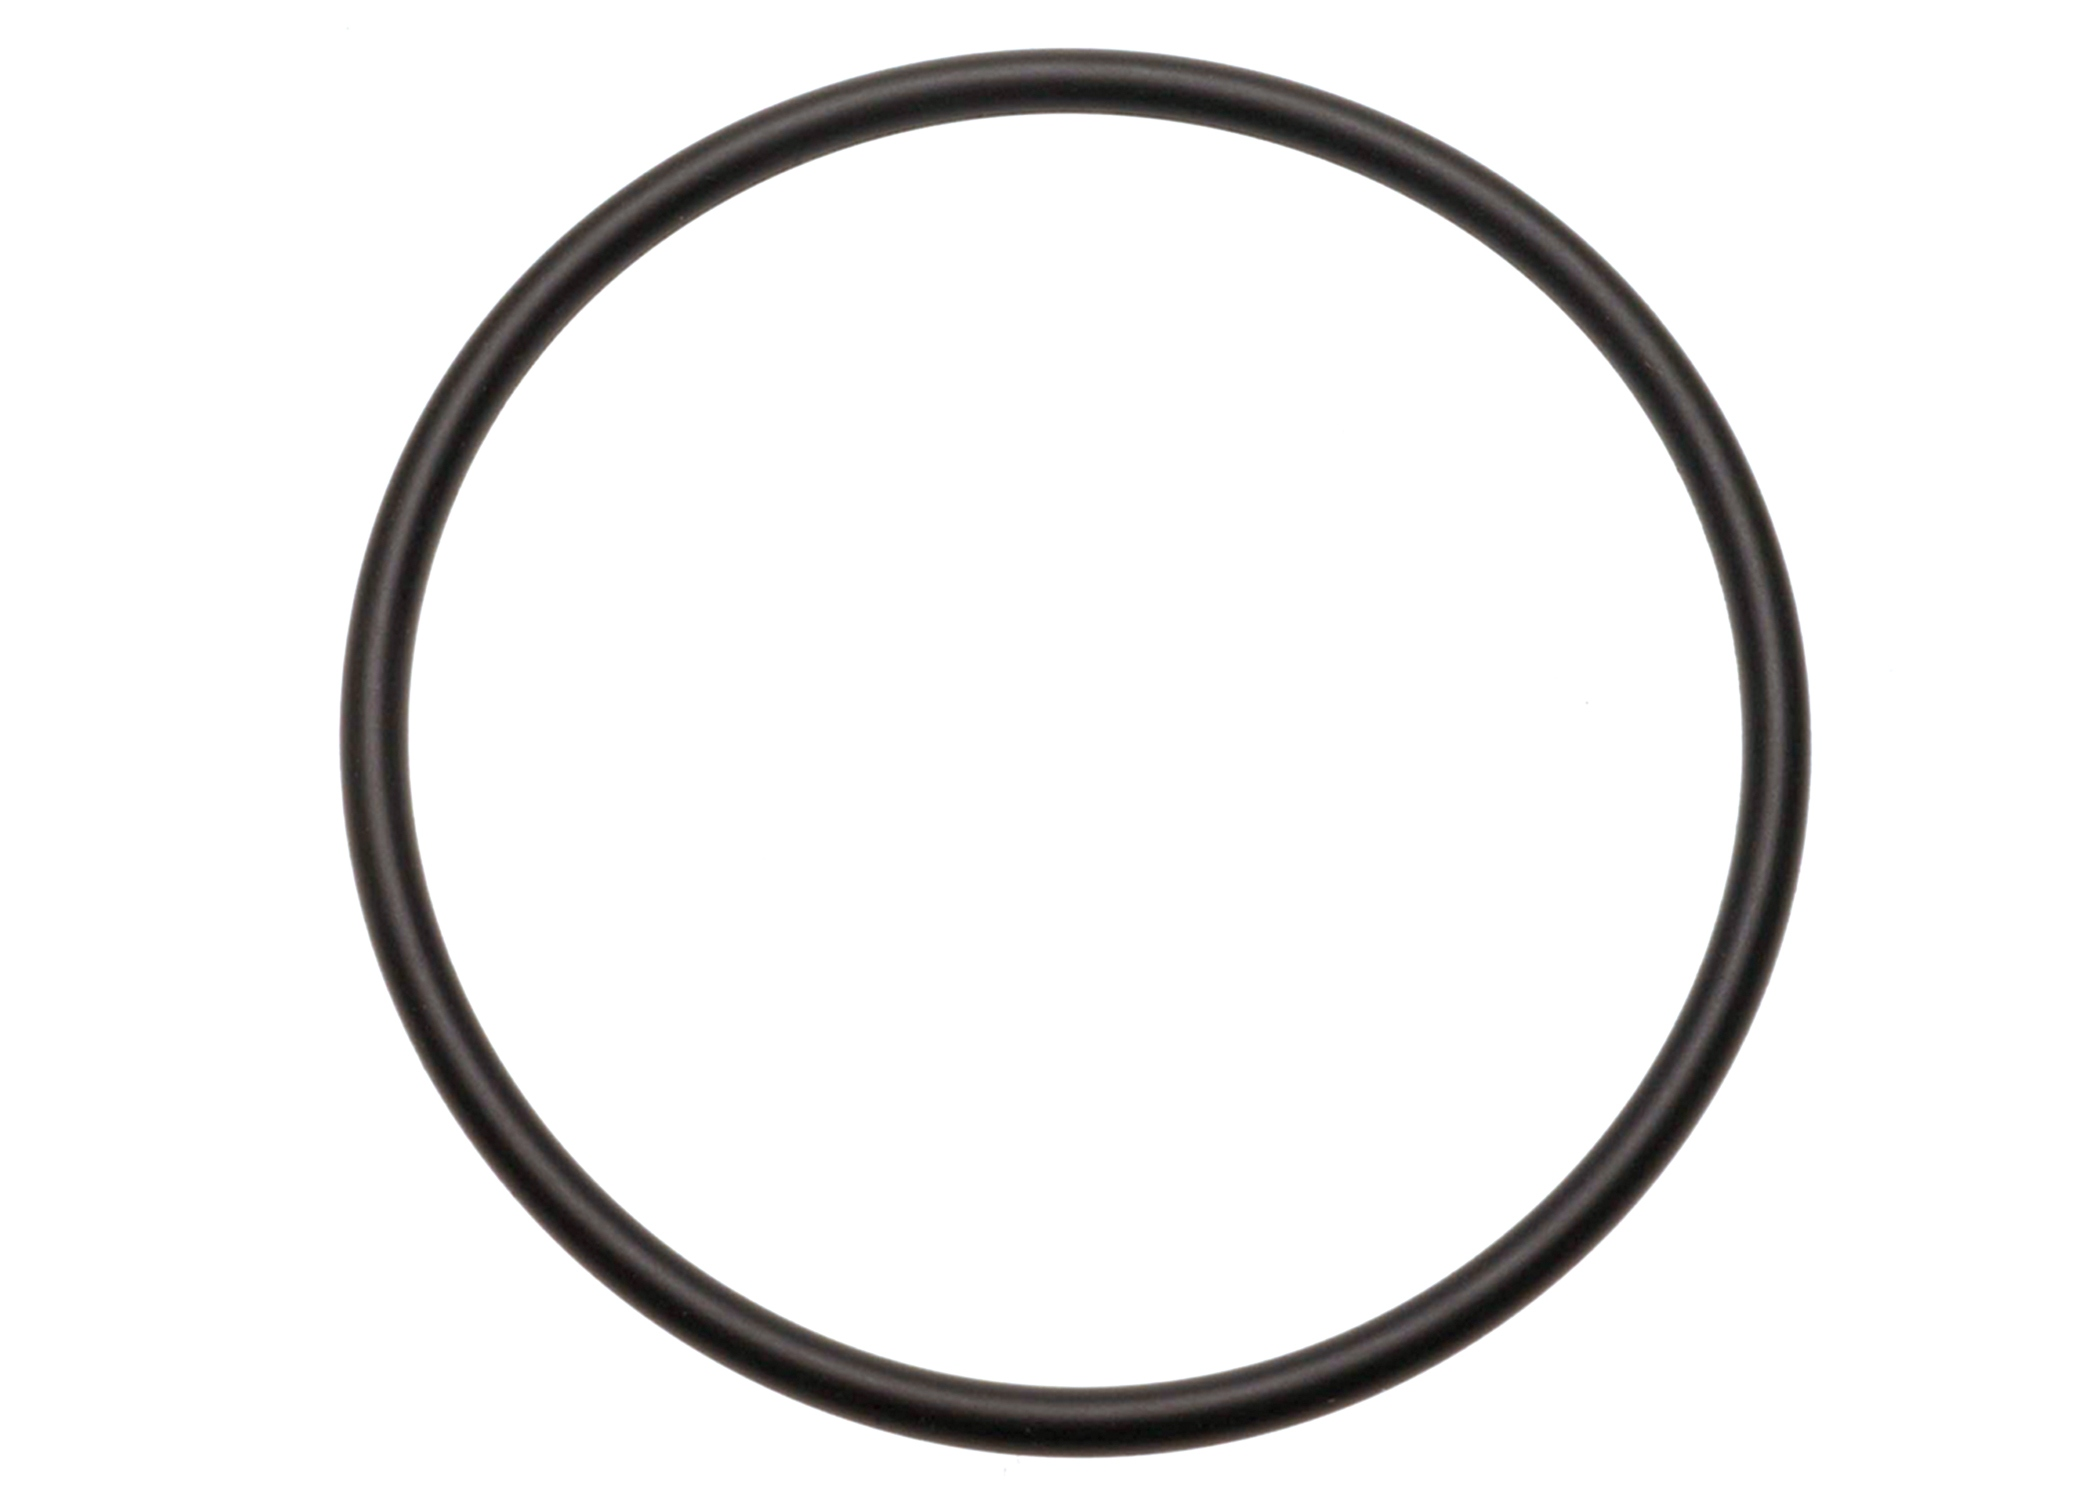 ACDELCO OE SERVICE - 1-2 Band Servo Cover Seal (O Ring) - DCB 8658111